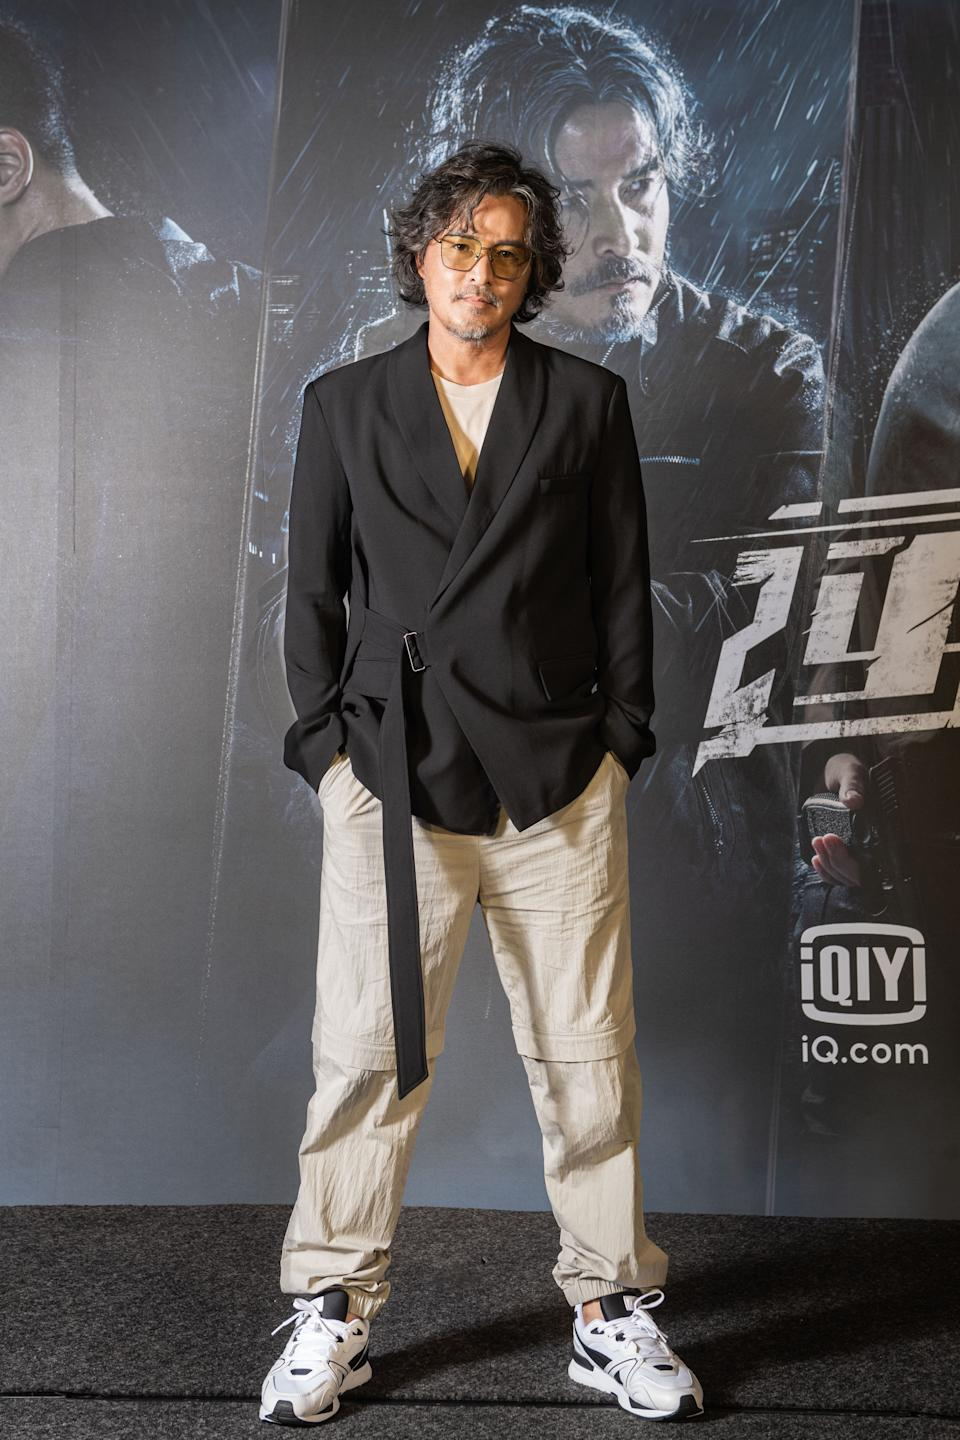 Actor Christopher Lee at a press conference in Taipei, Taiwan for iQiyi series Danger Zone on 1 September 2021. (Photo: iQiyi)